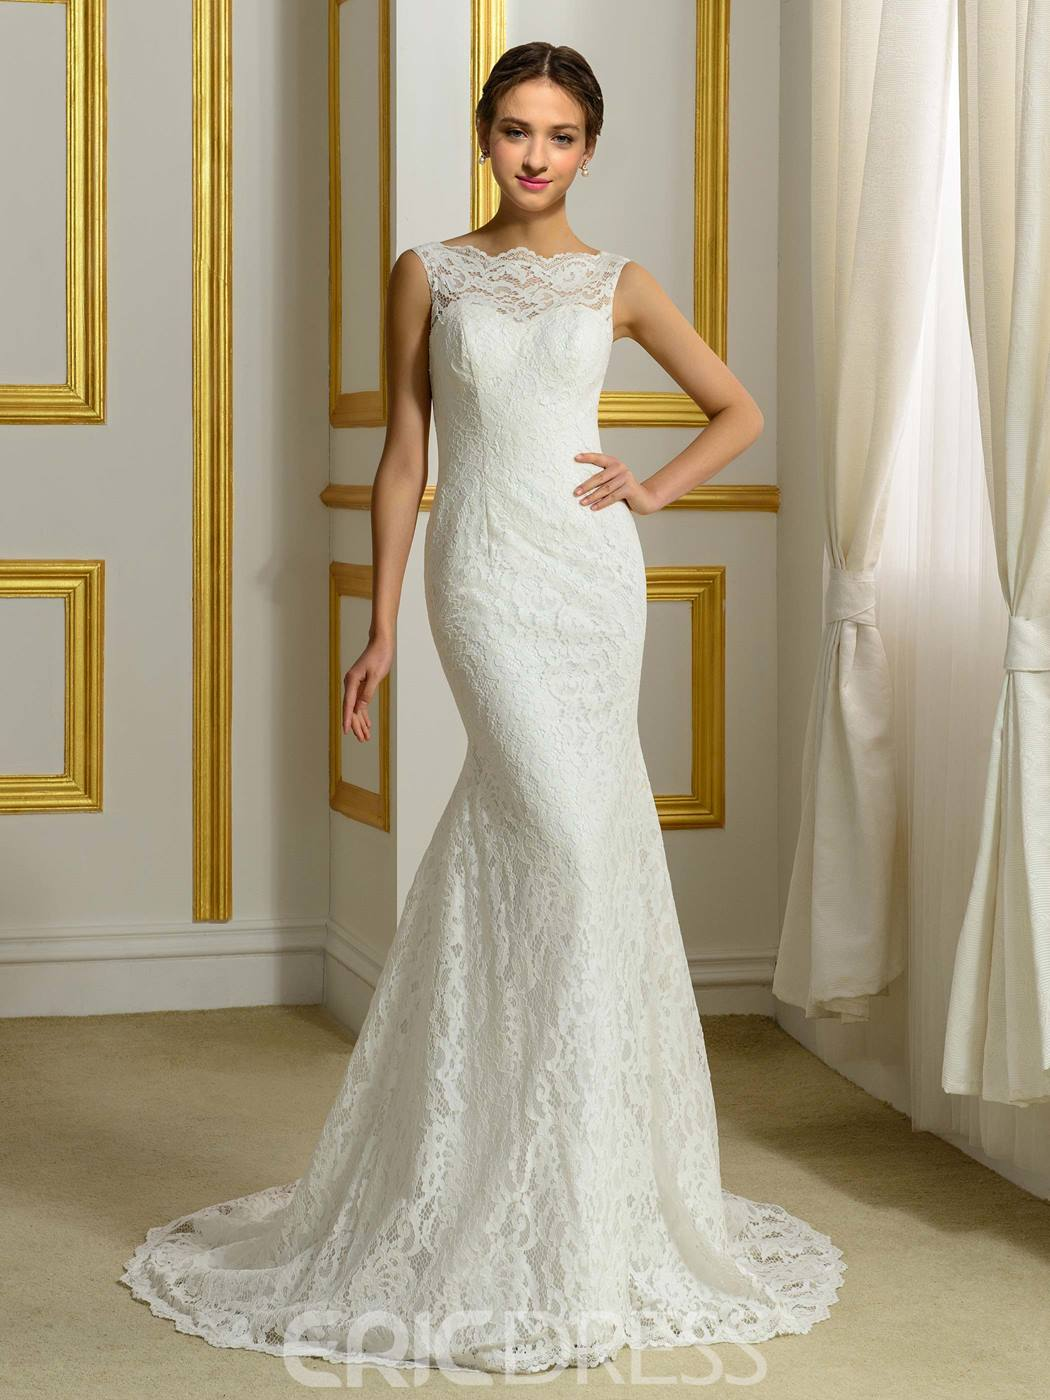 Ericdress High Quality Lace Backless Mermaid Wedding Dress